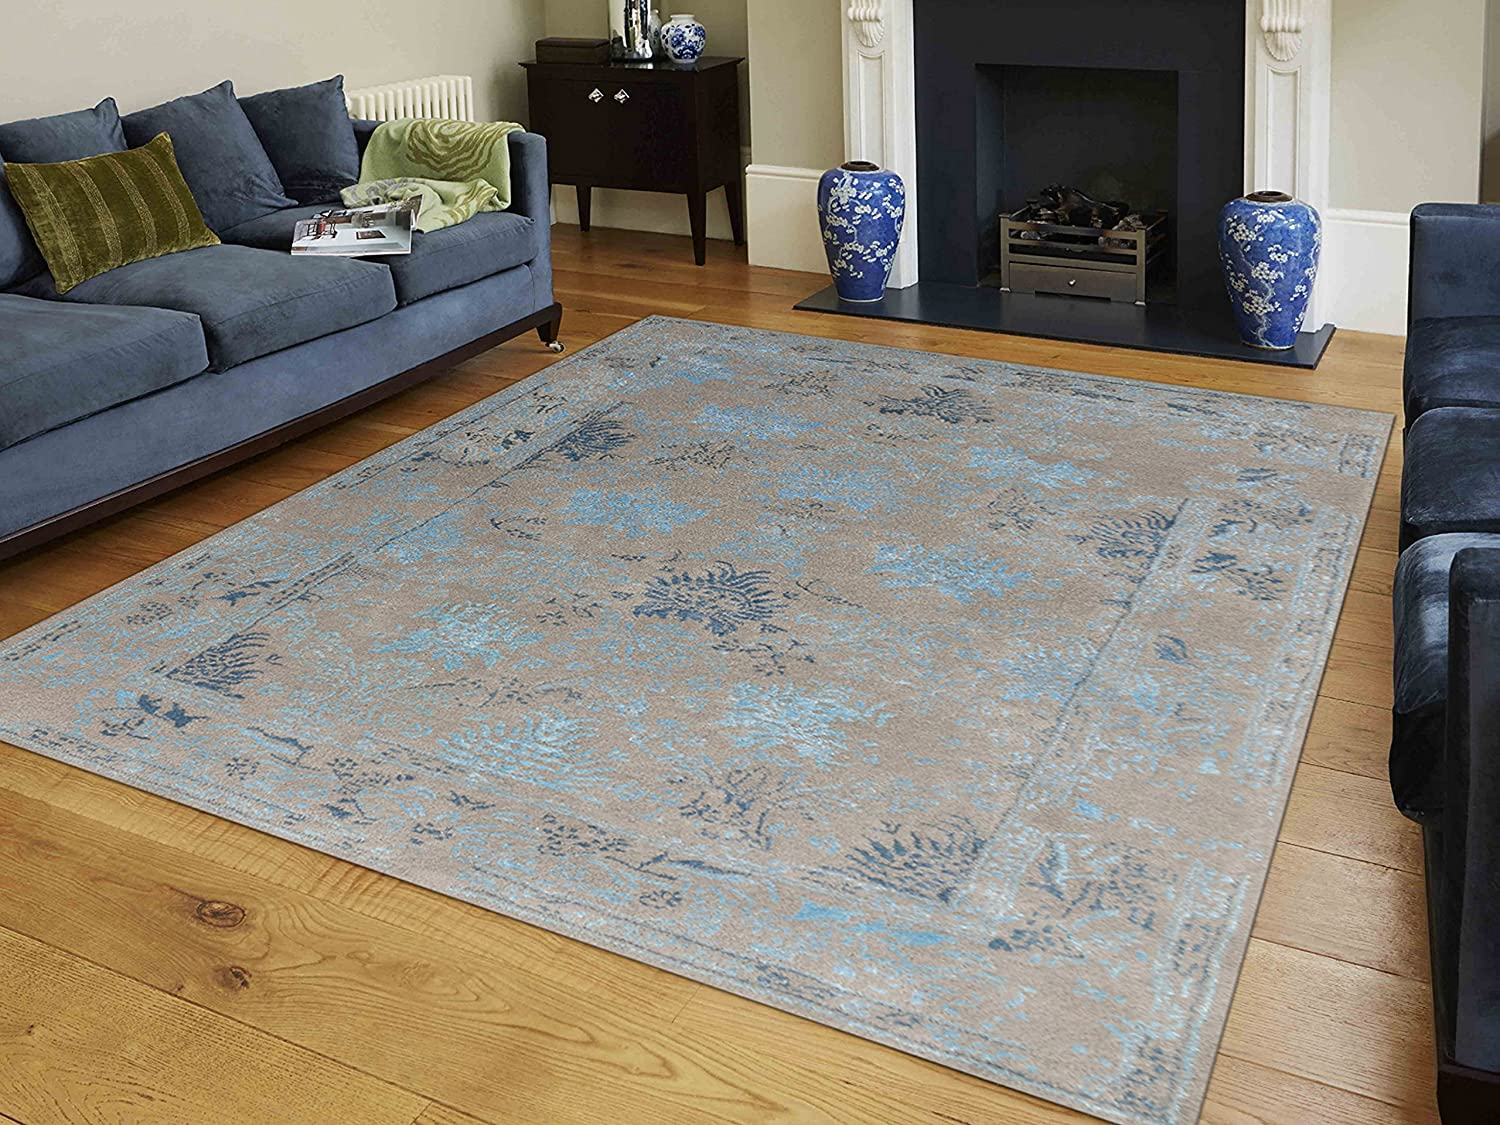 AMER Artist 12 Hand-Tufted Accent Rug Silver-Blue 2x3